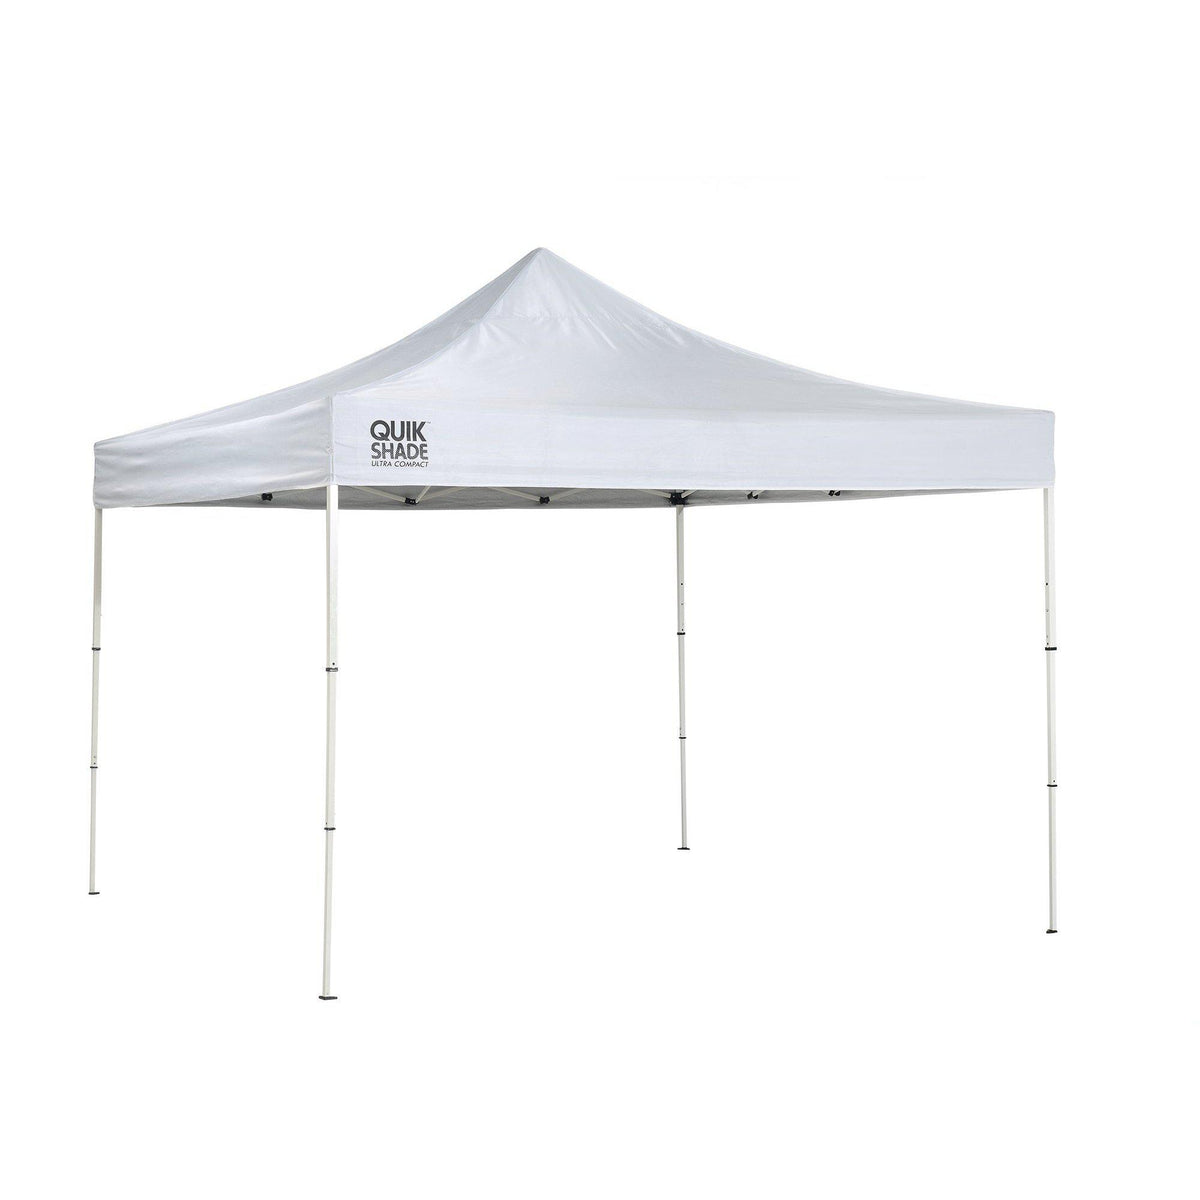 Quik Shade Marketplace Compact 10 x 10 ft. Straight Leg Canopy, White